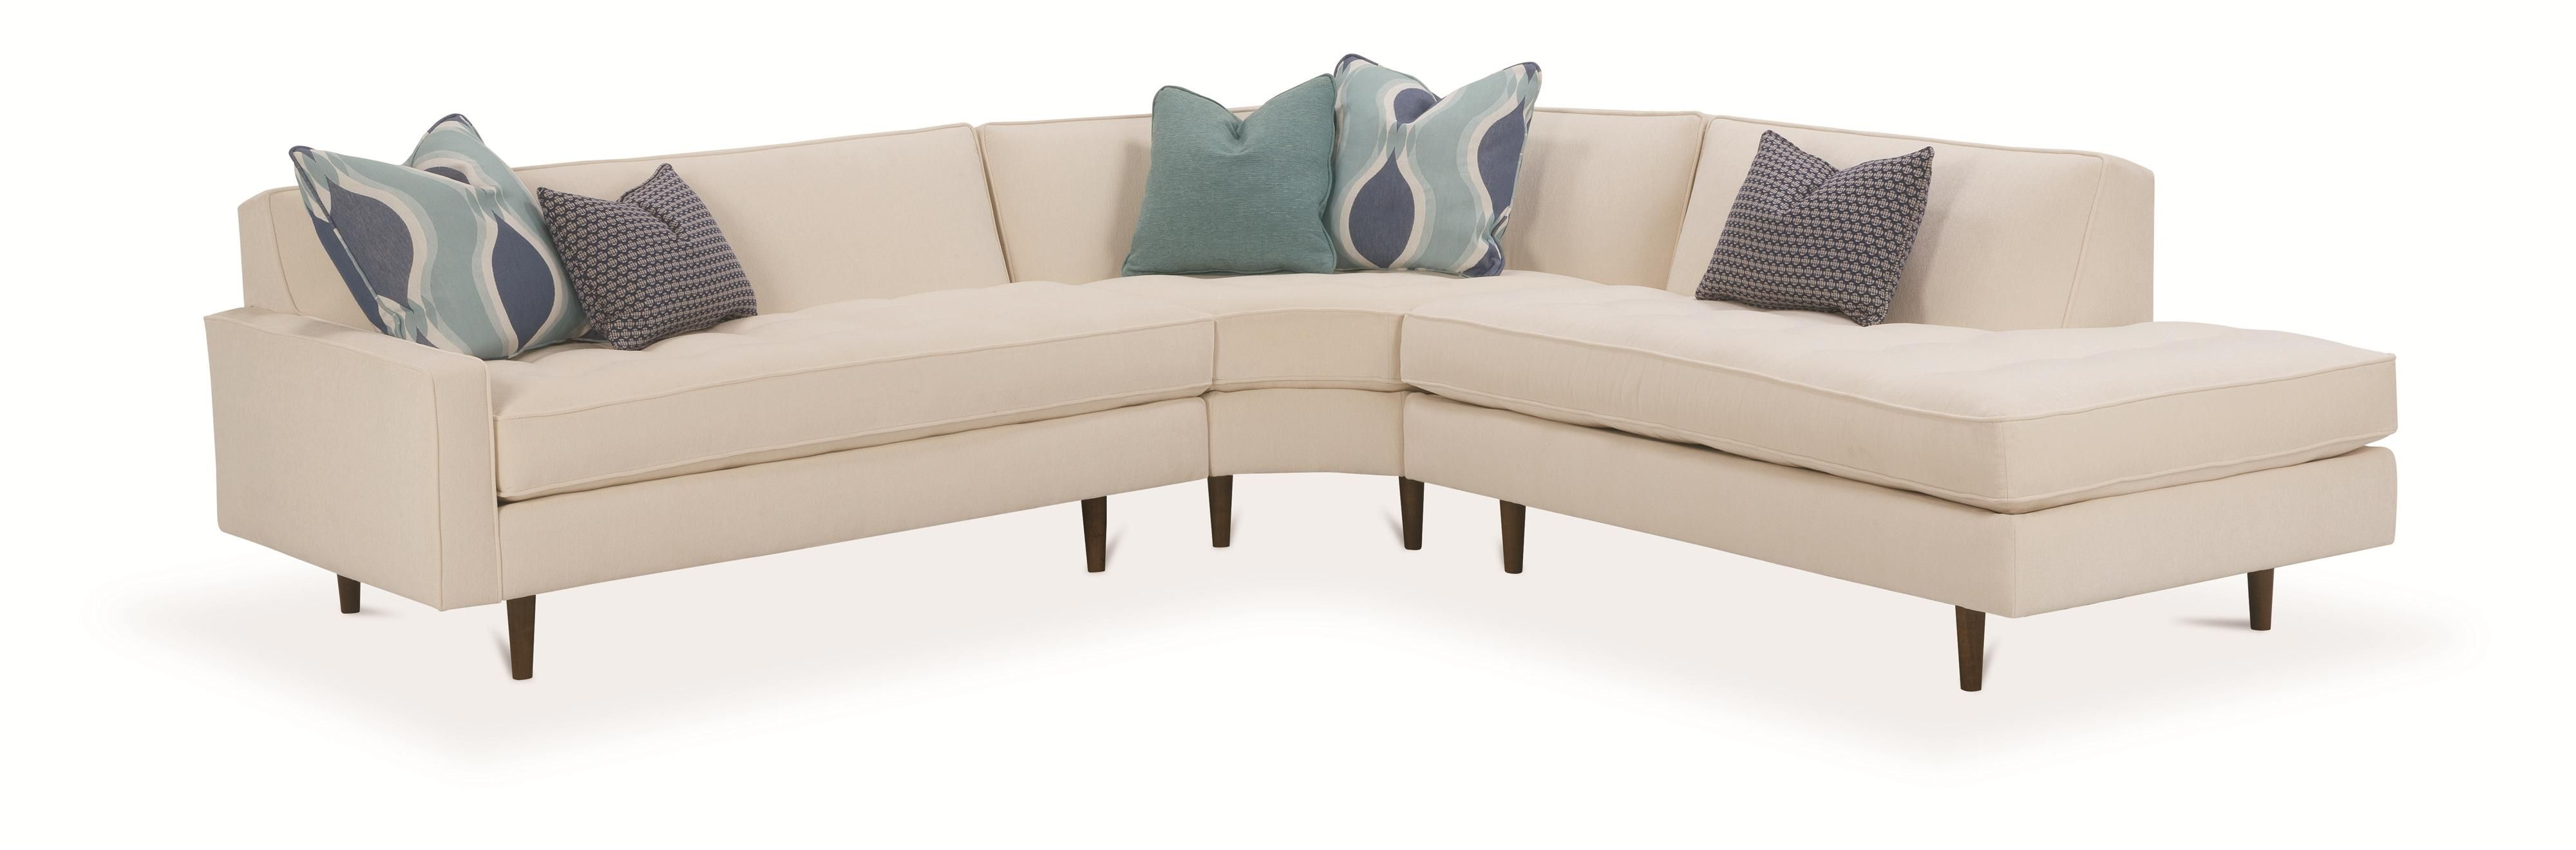 Rowe Brady Contemporary 3 Piece Sectional Sofa   Reeds Furniture   Sofa  Sectional Los Angeles, Thousand Oaks, Simi Valley, Agoura Hills, Woodland  Hills